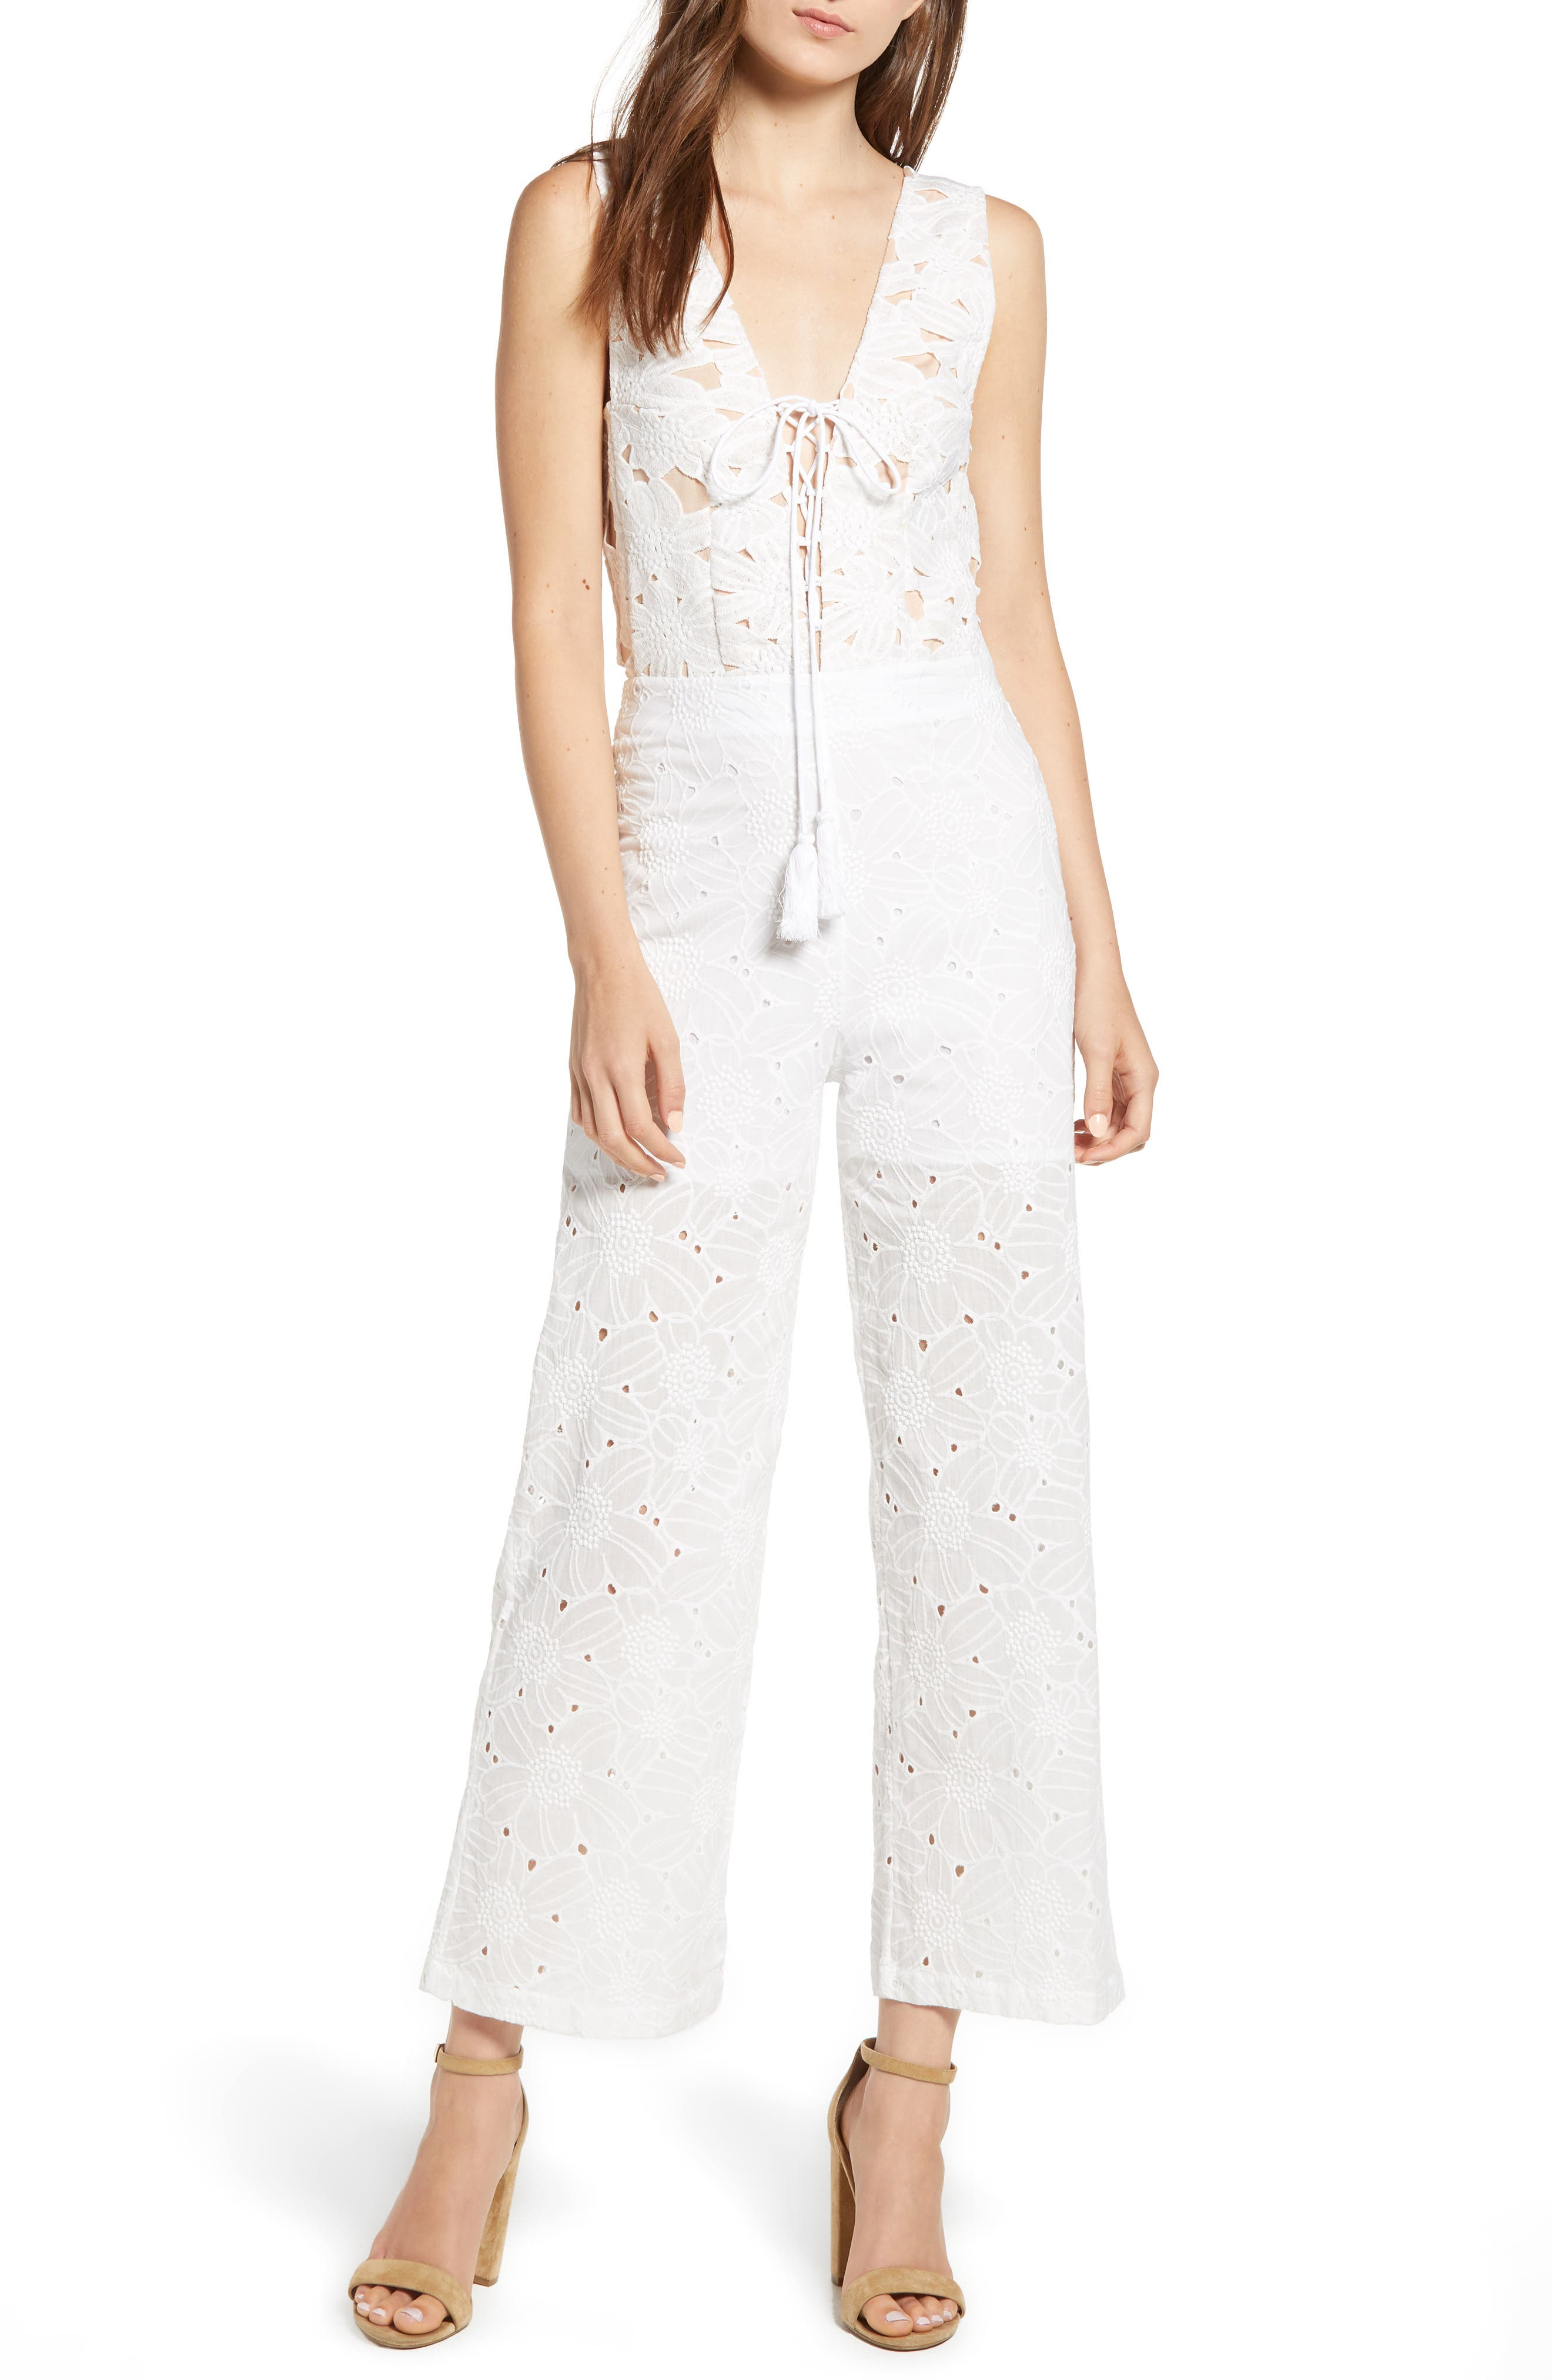 KAS NEW YORK LACE-UP FRONT EYELET JUMPSUIT